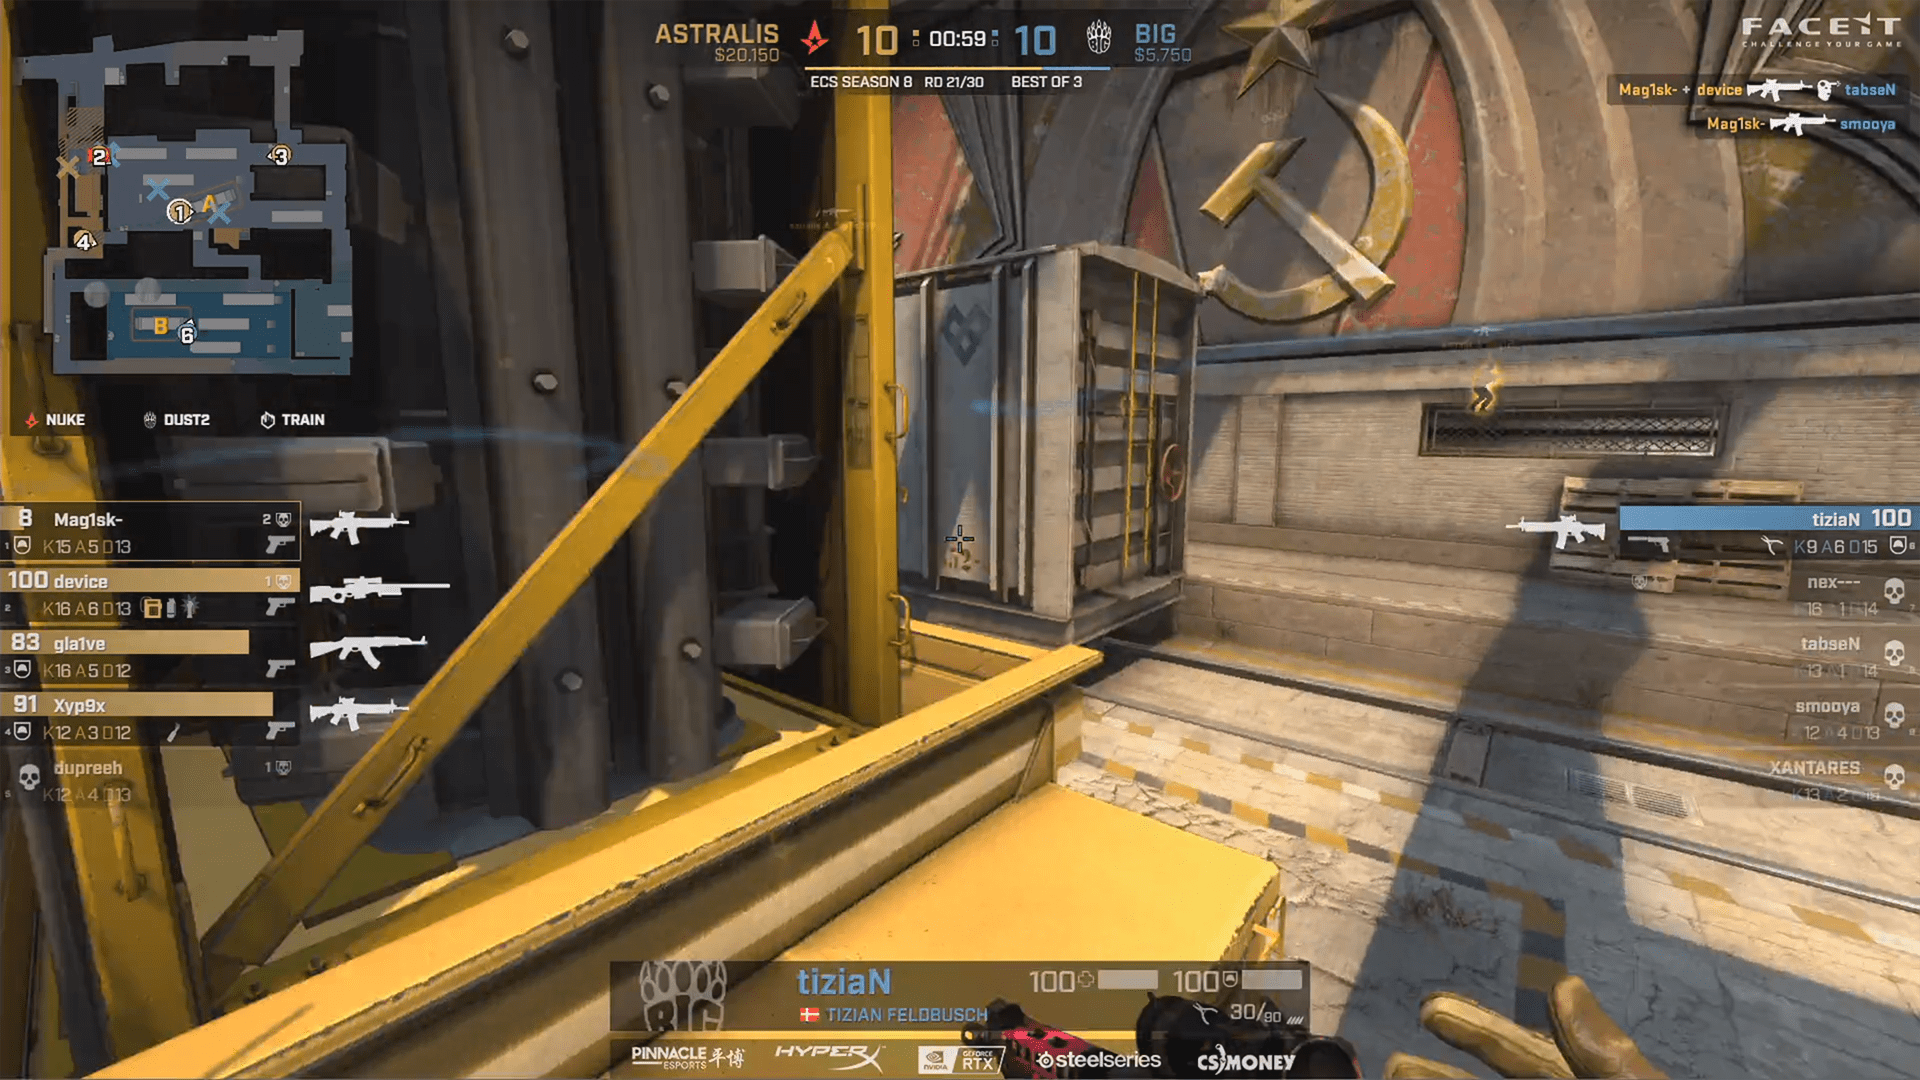 Counter-Strike: Global Offensive – ECS Season 8 – Astralis Versus BIG Ends With A Bullet Away From A World Record Victory